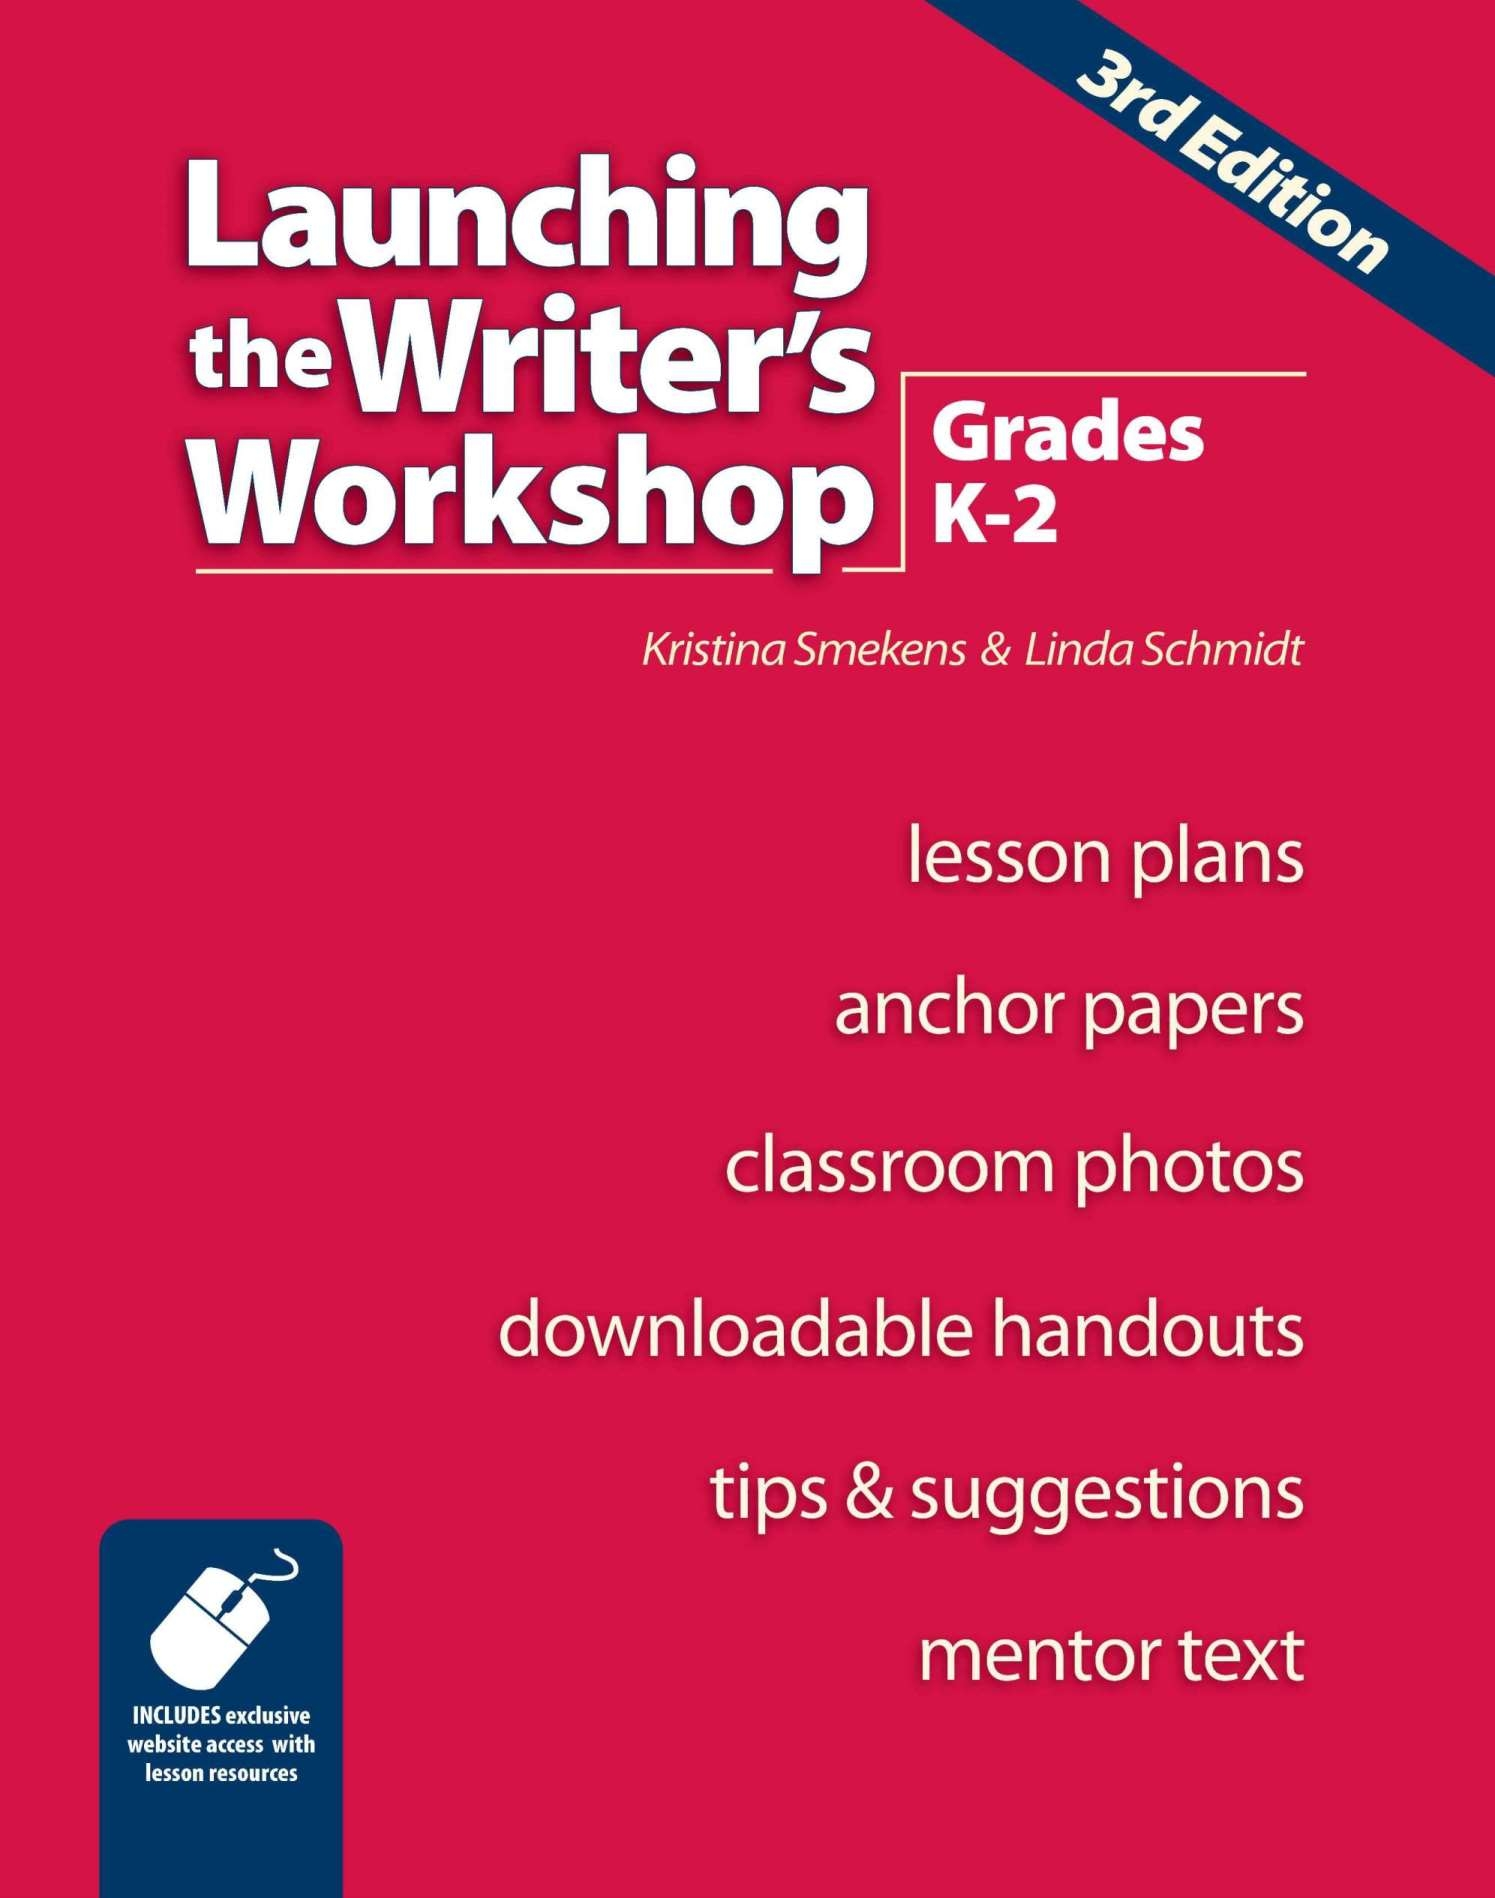 Launching the Writer's Workshop